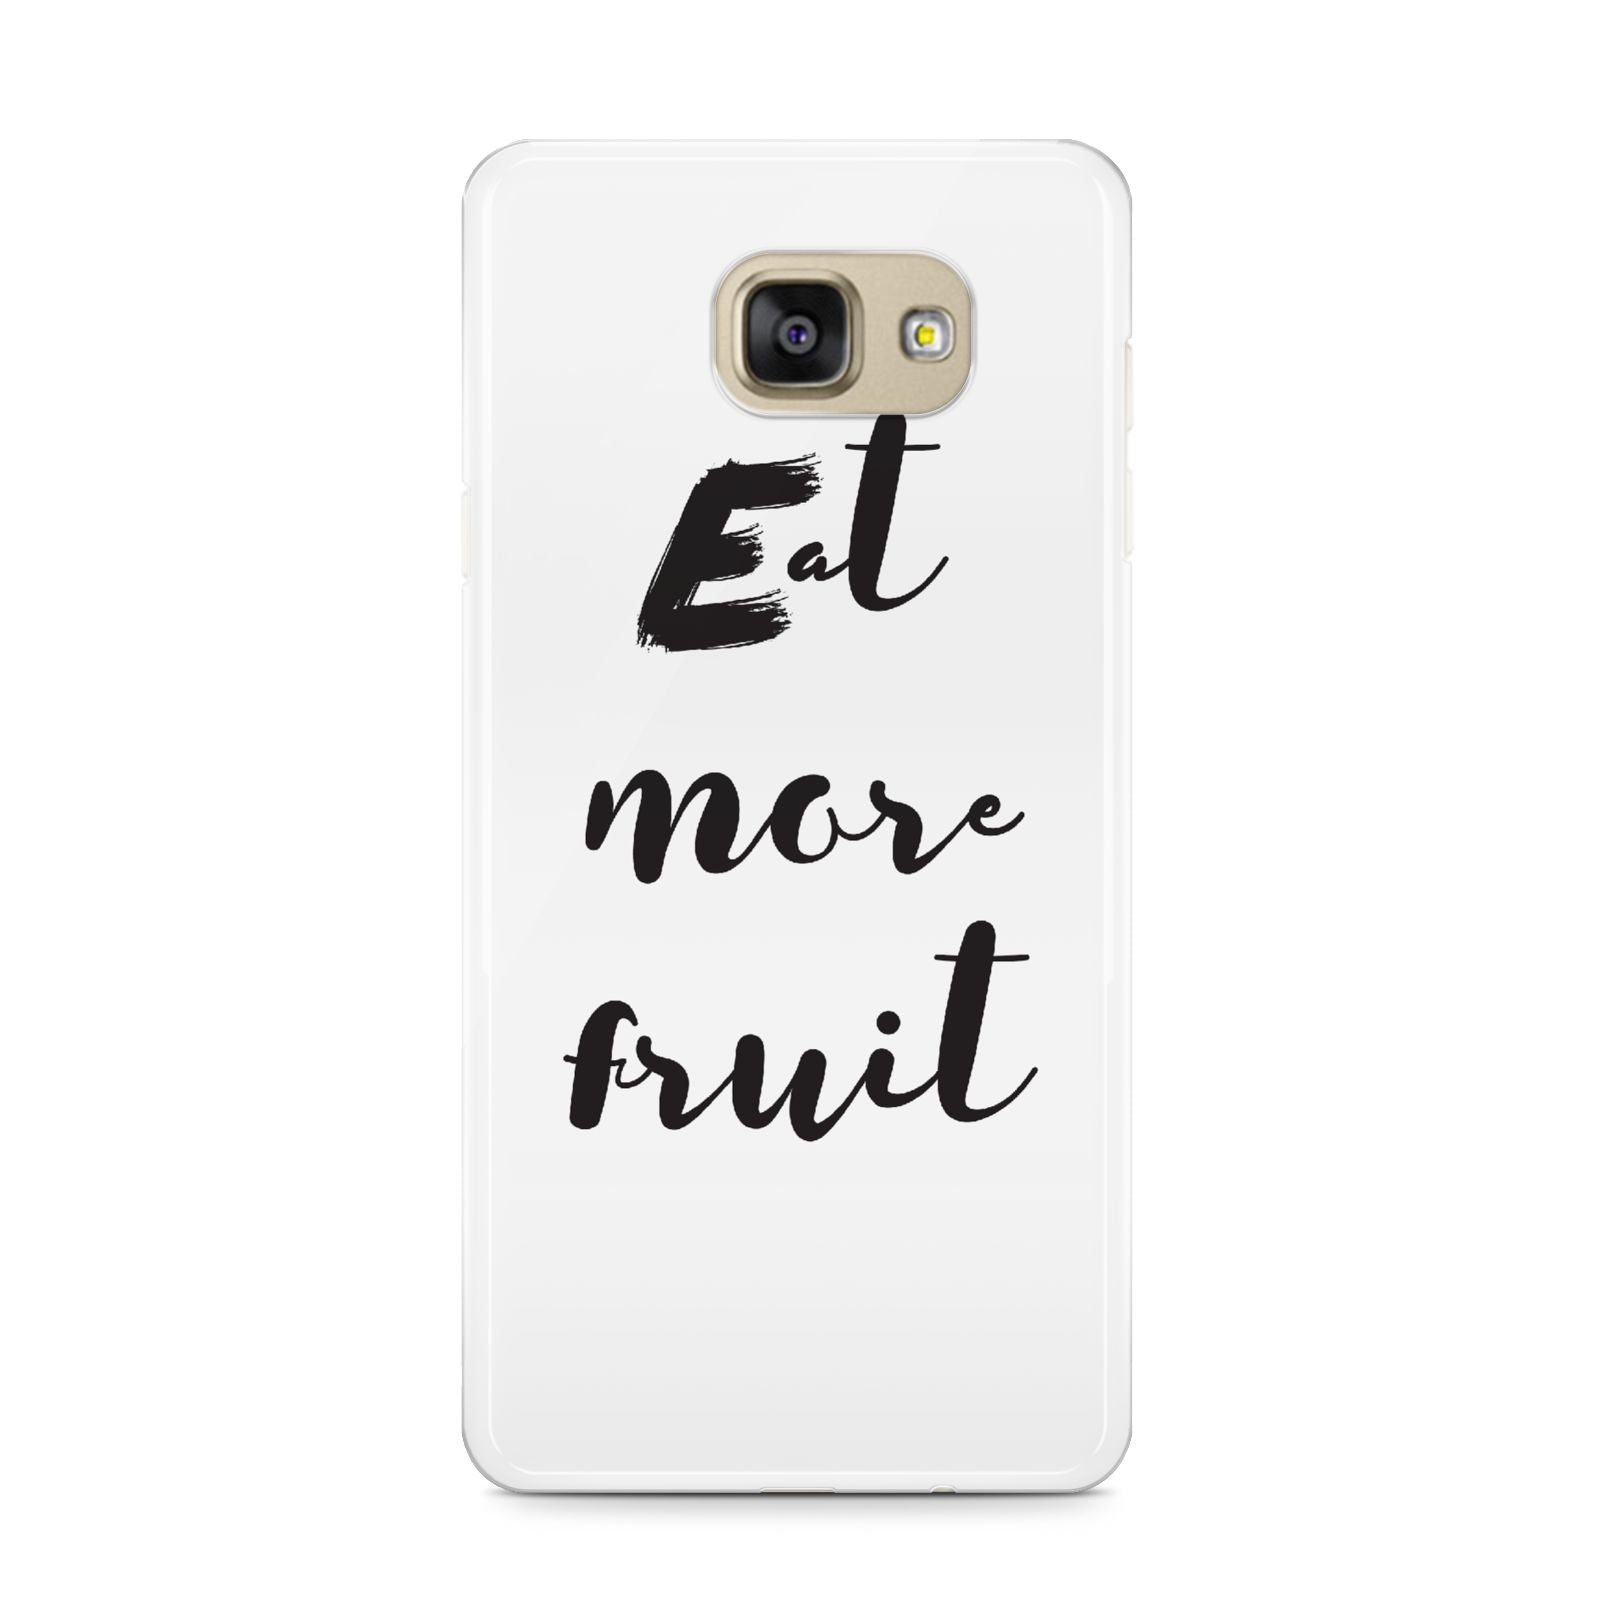 Eat More Fruit Samsung Galaxy A9 2016 Case on gold phone